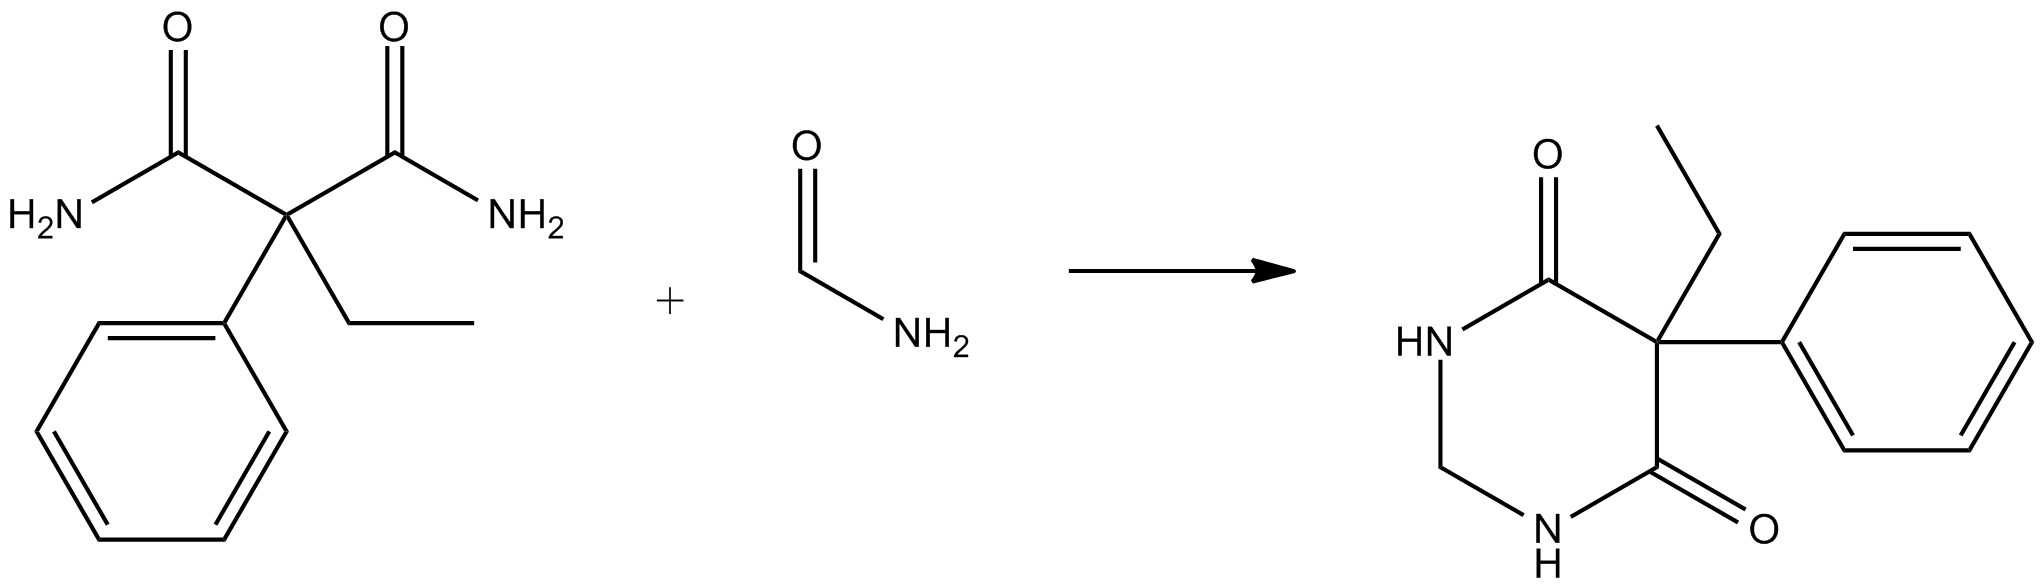 File:Primidone Synthesis.png - Wikimedia Commons